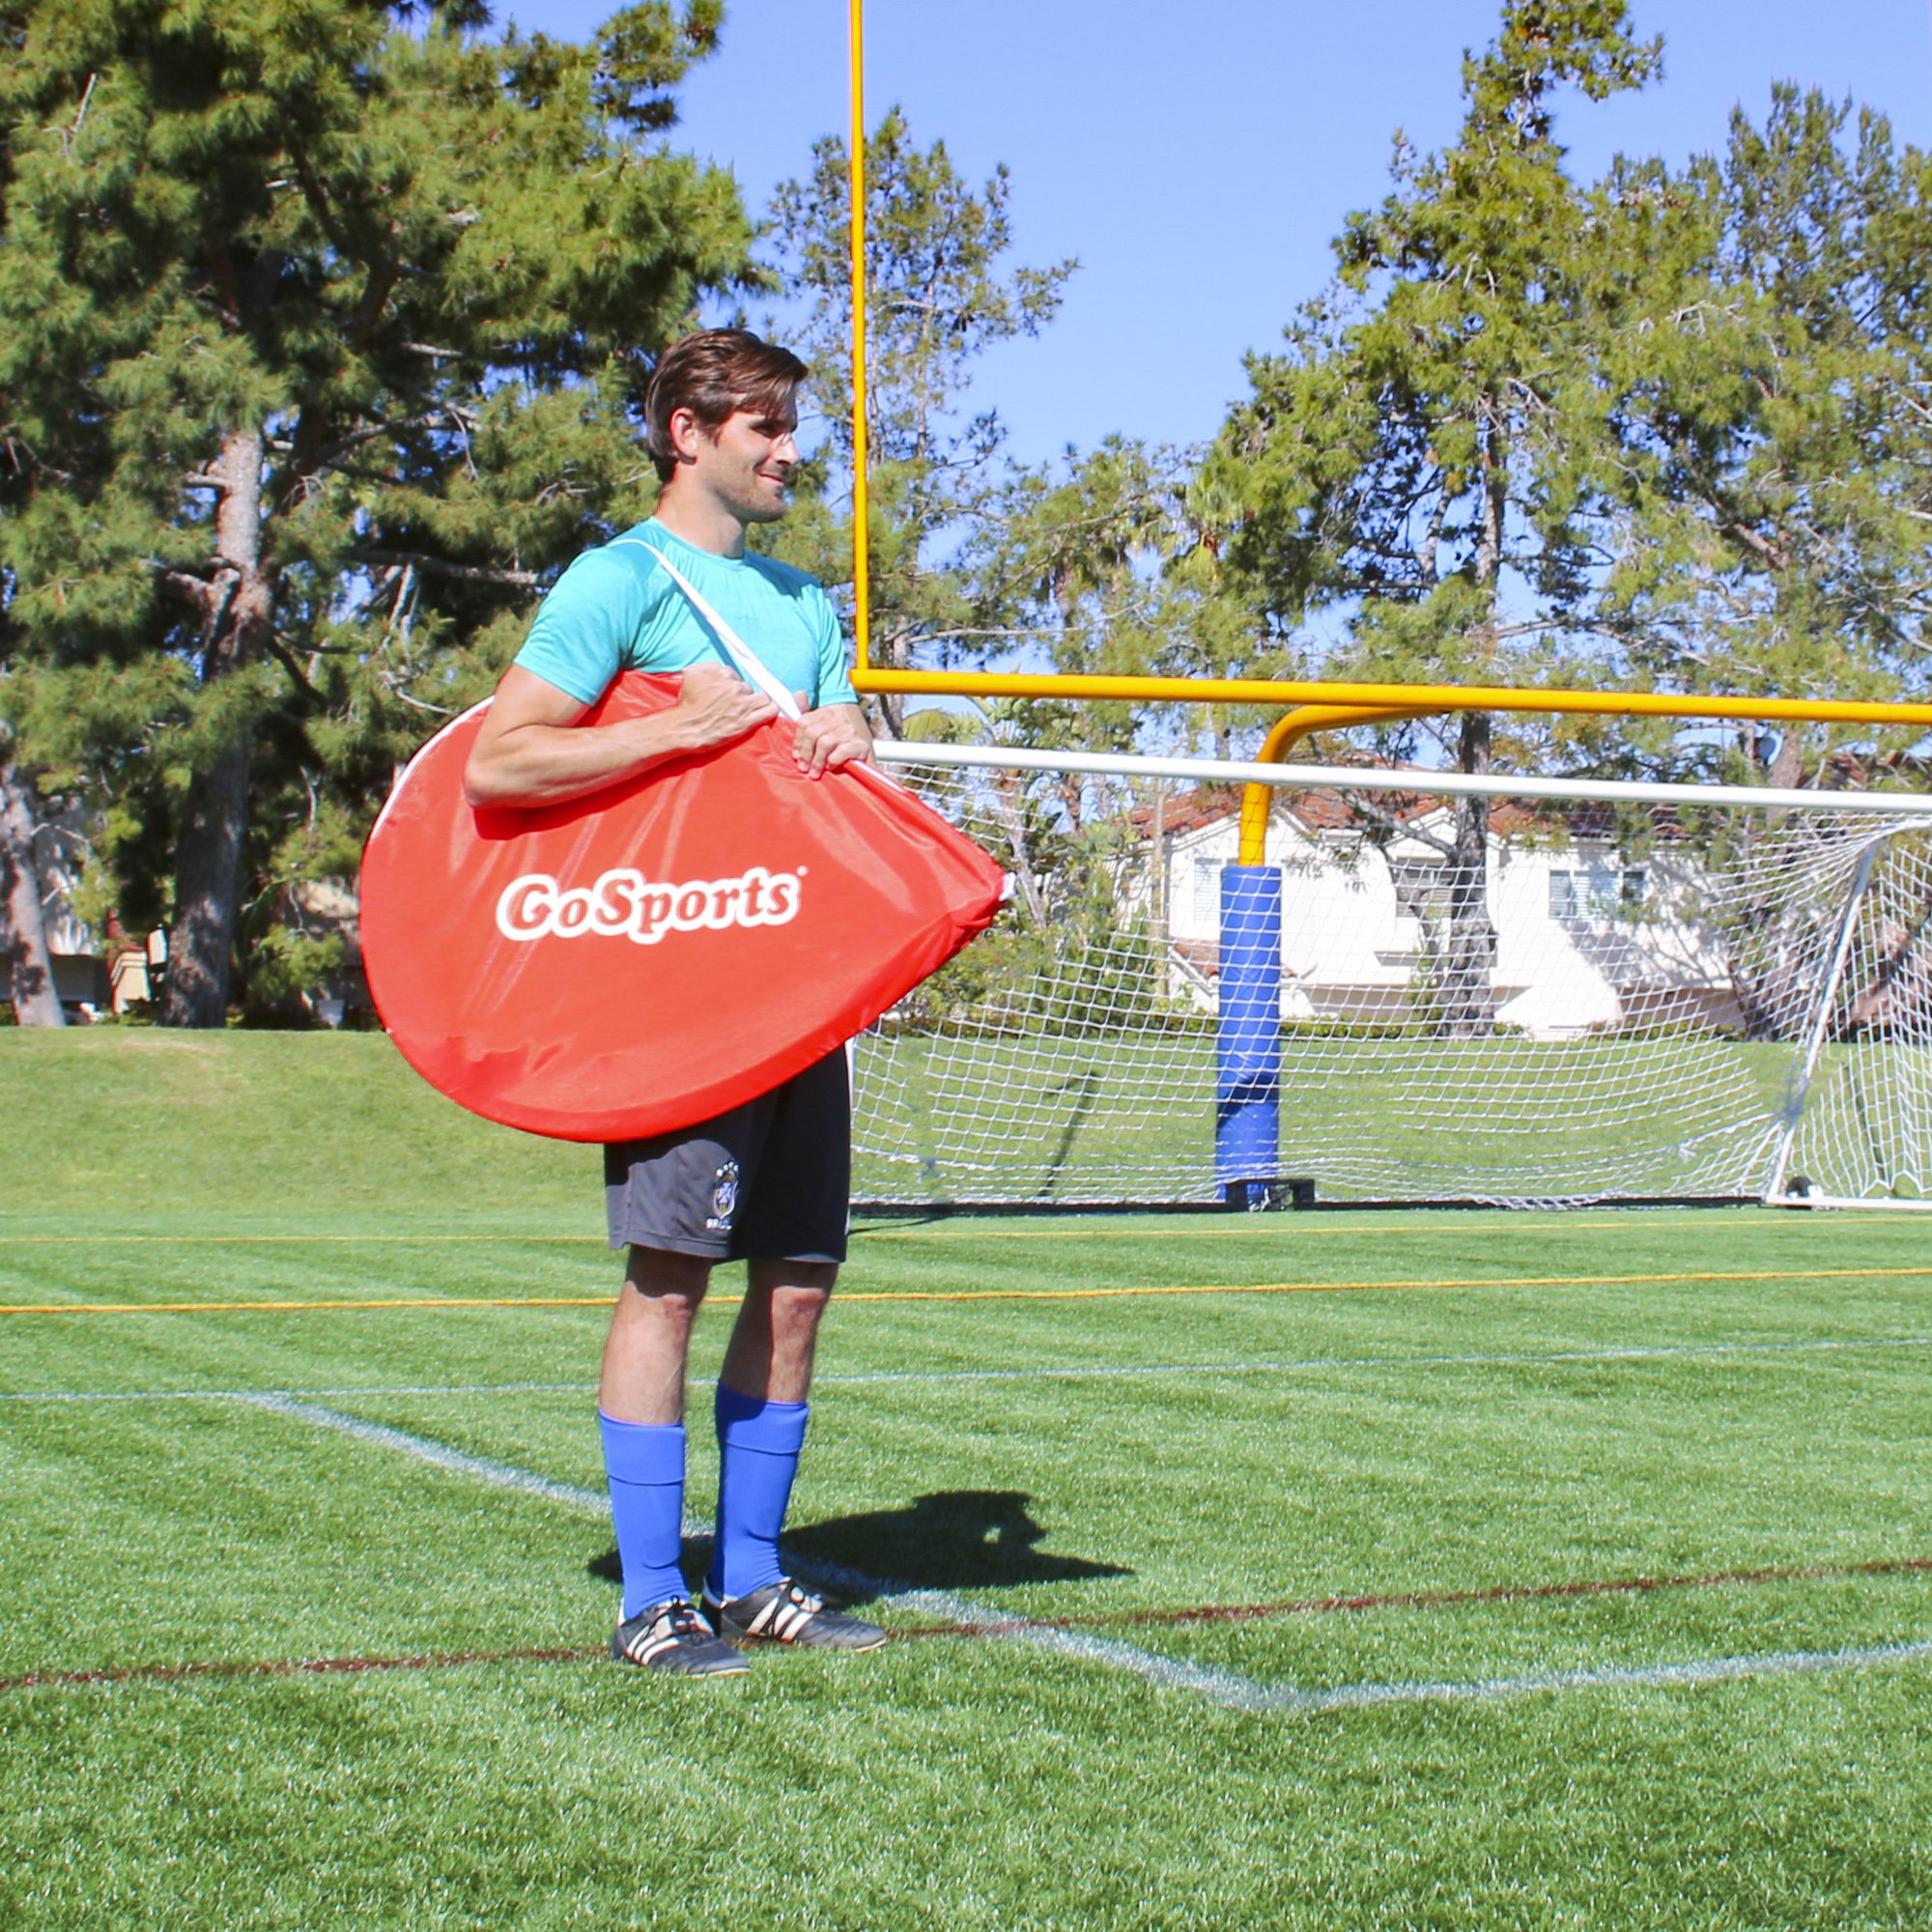 GoSports Portable Pop-Up Soccer Goal (Set of 2), Red/White, 4' by GoSports (Image #6)